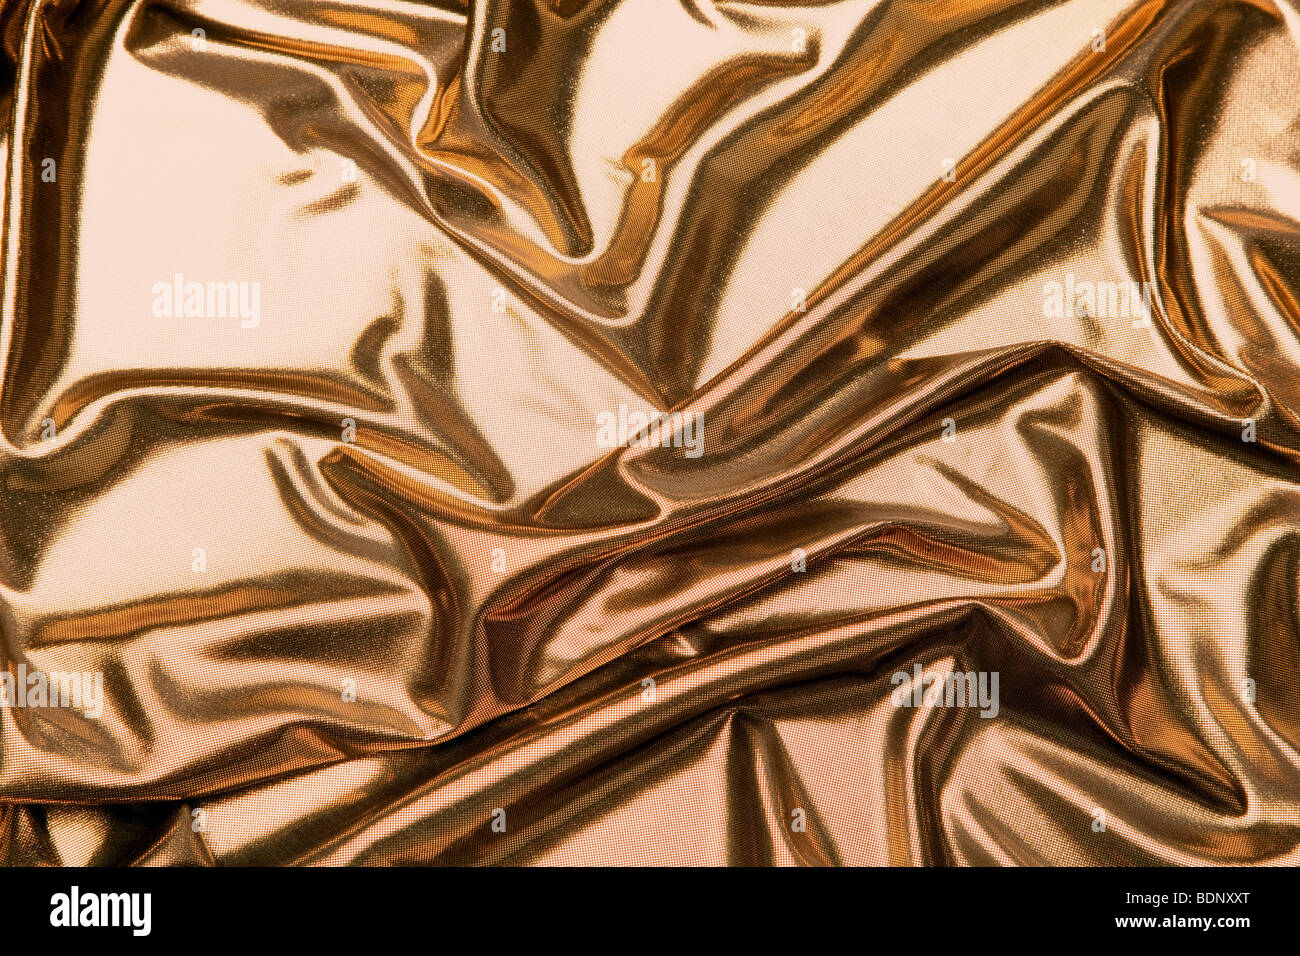 Gold metallic fabric - Stock Image